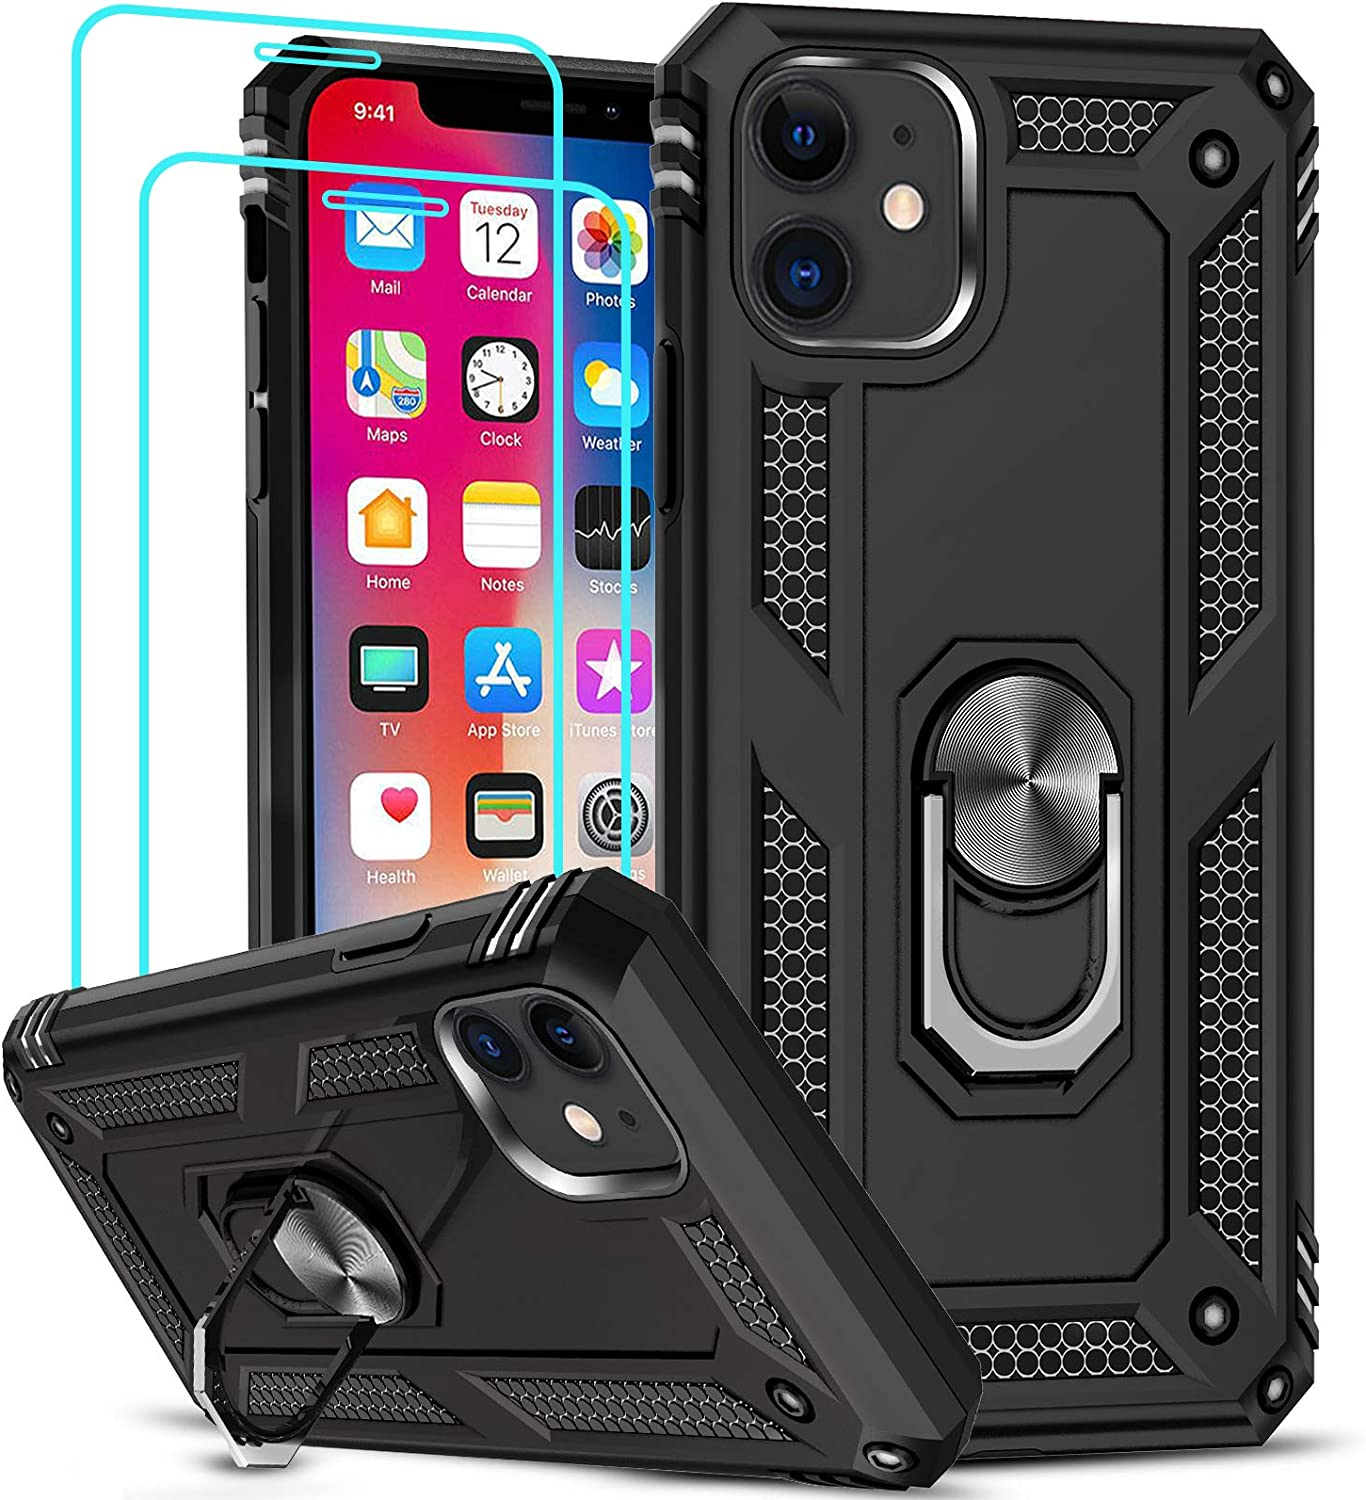 LeYi Compatible for iPhone 11 Case with Tempered Glass Screen Protector[2 Pack], Military-Grade Armor Phone Cover Case with Ring Magnetic Car Mount Kickstand for iPhone 11 6.1 inch, Black